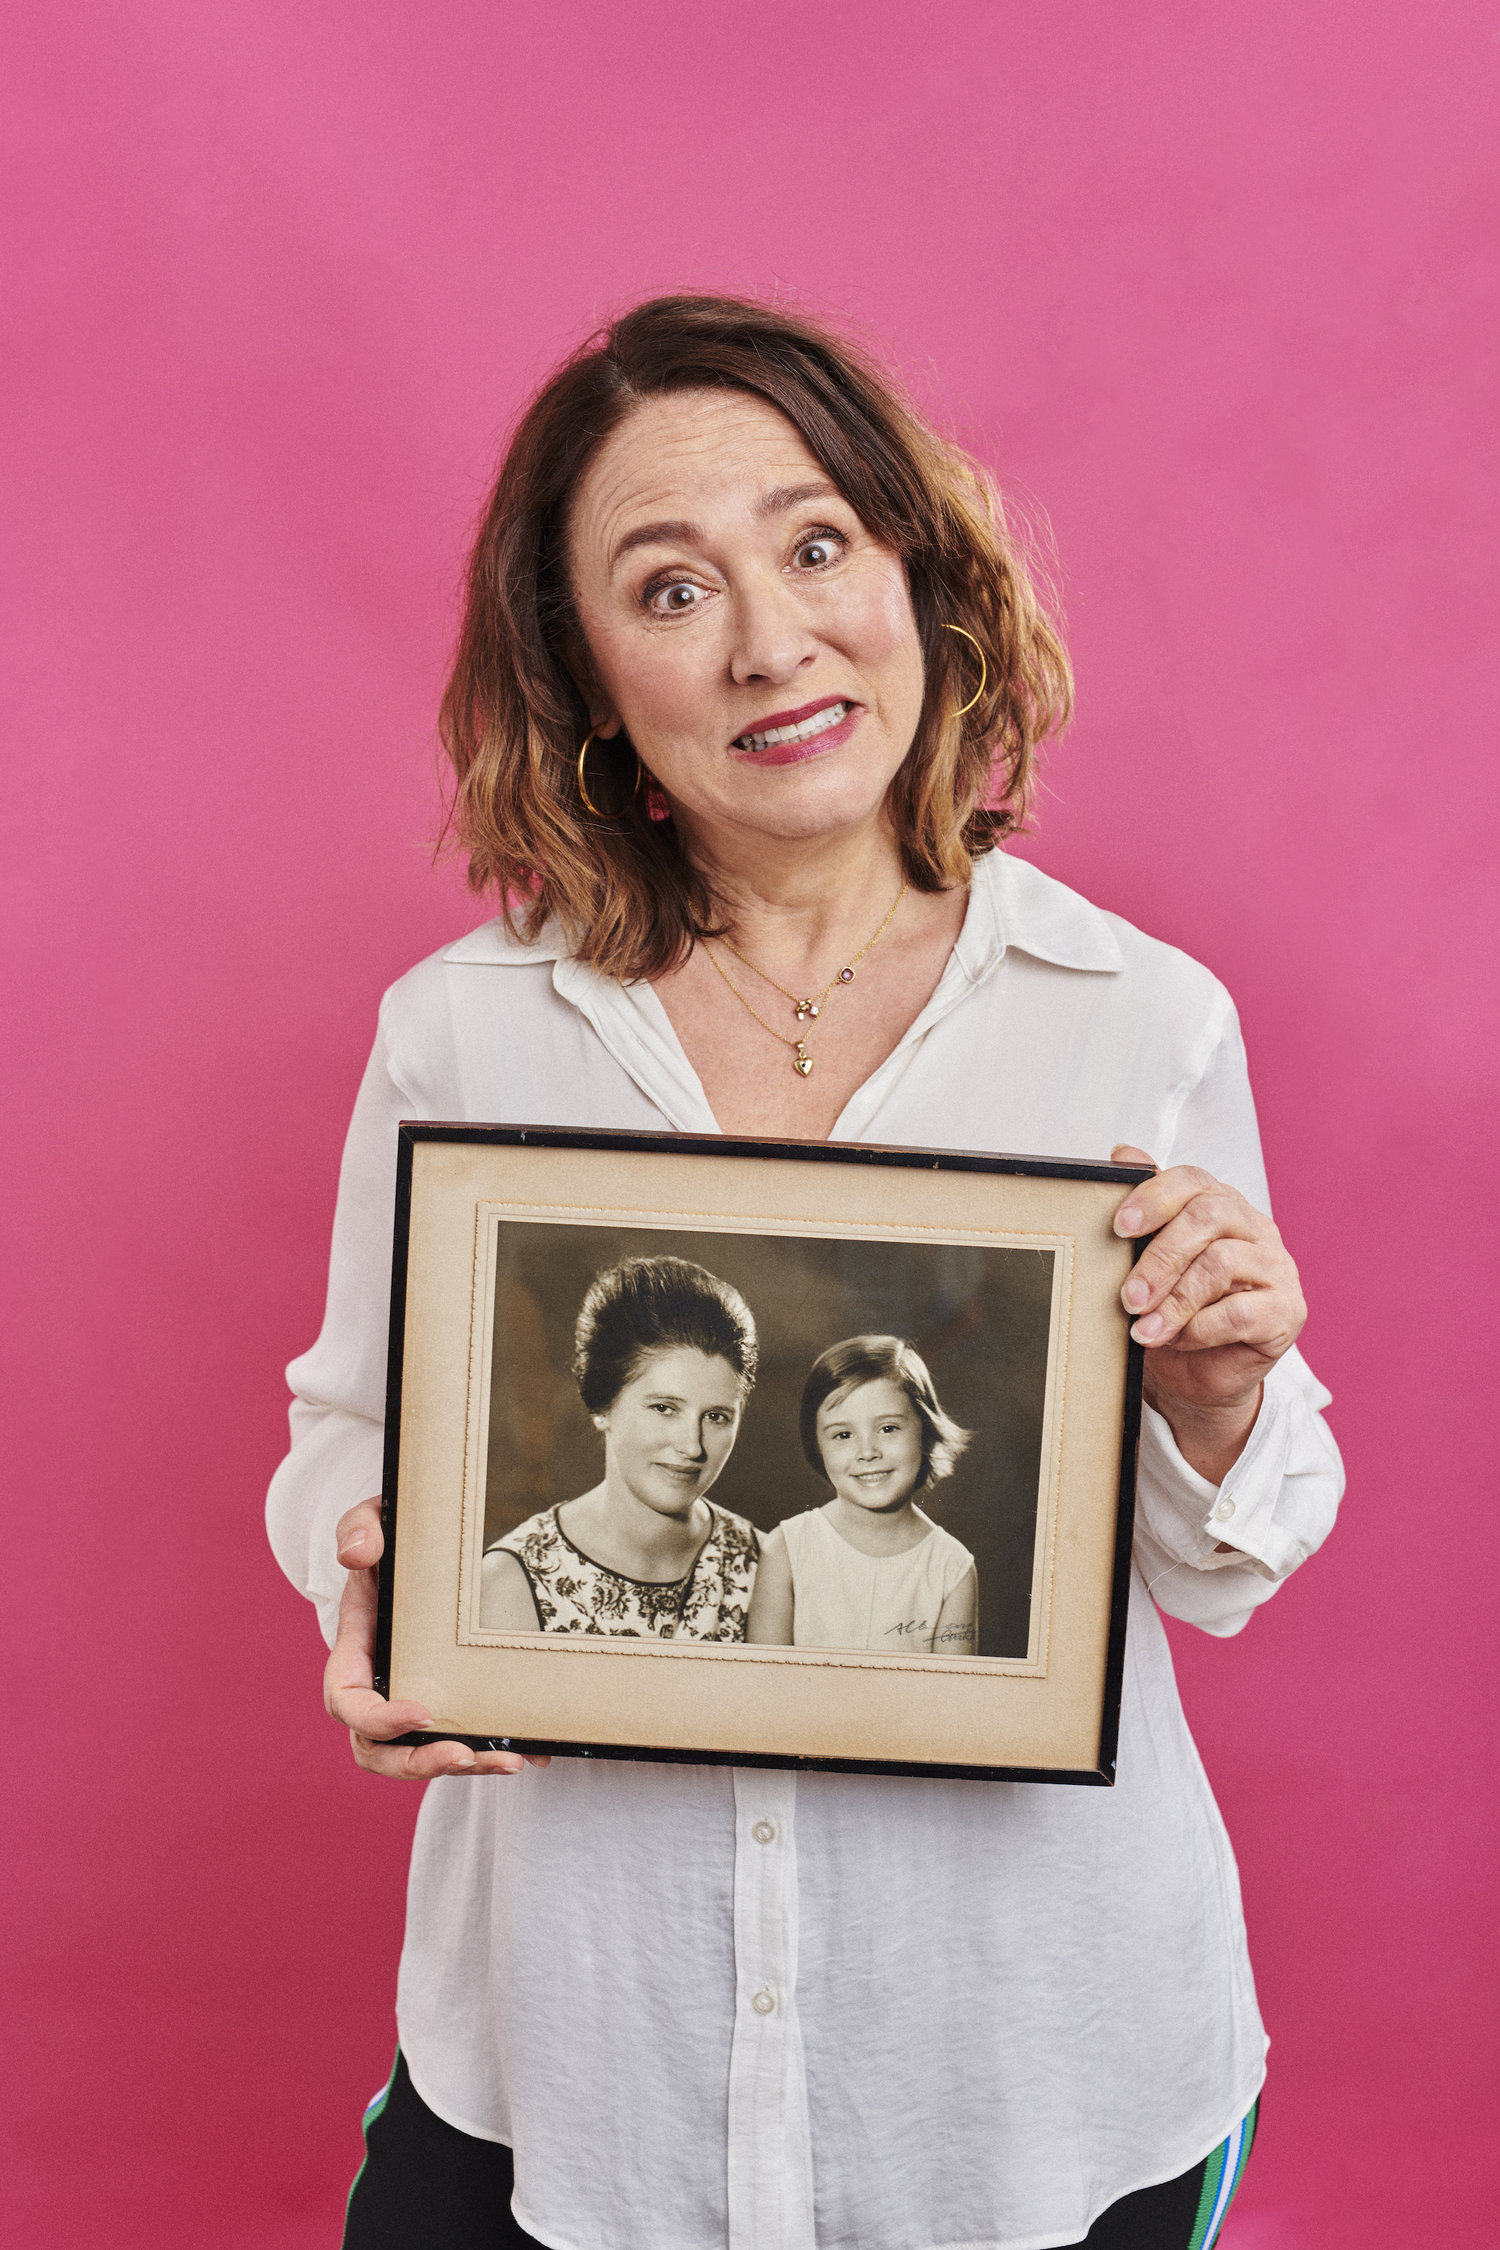 Arabella Weir: Does My Mum Loom Big In This? @ Otley Courthouse